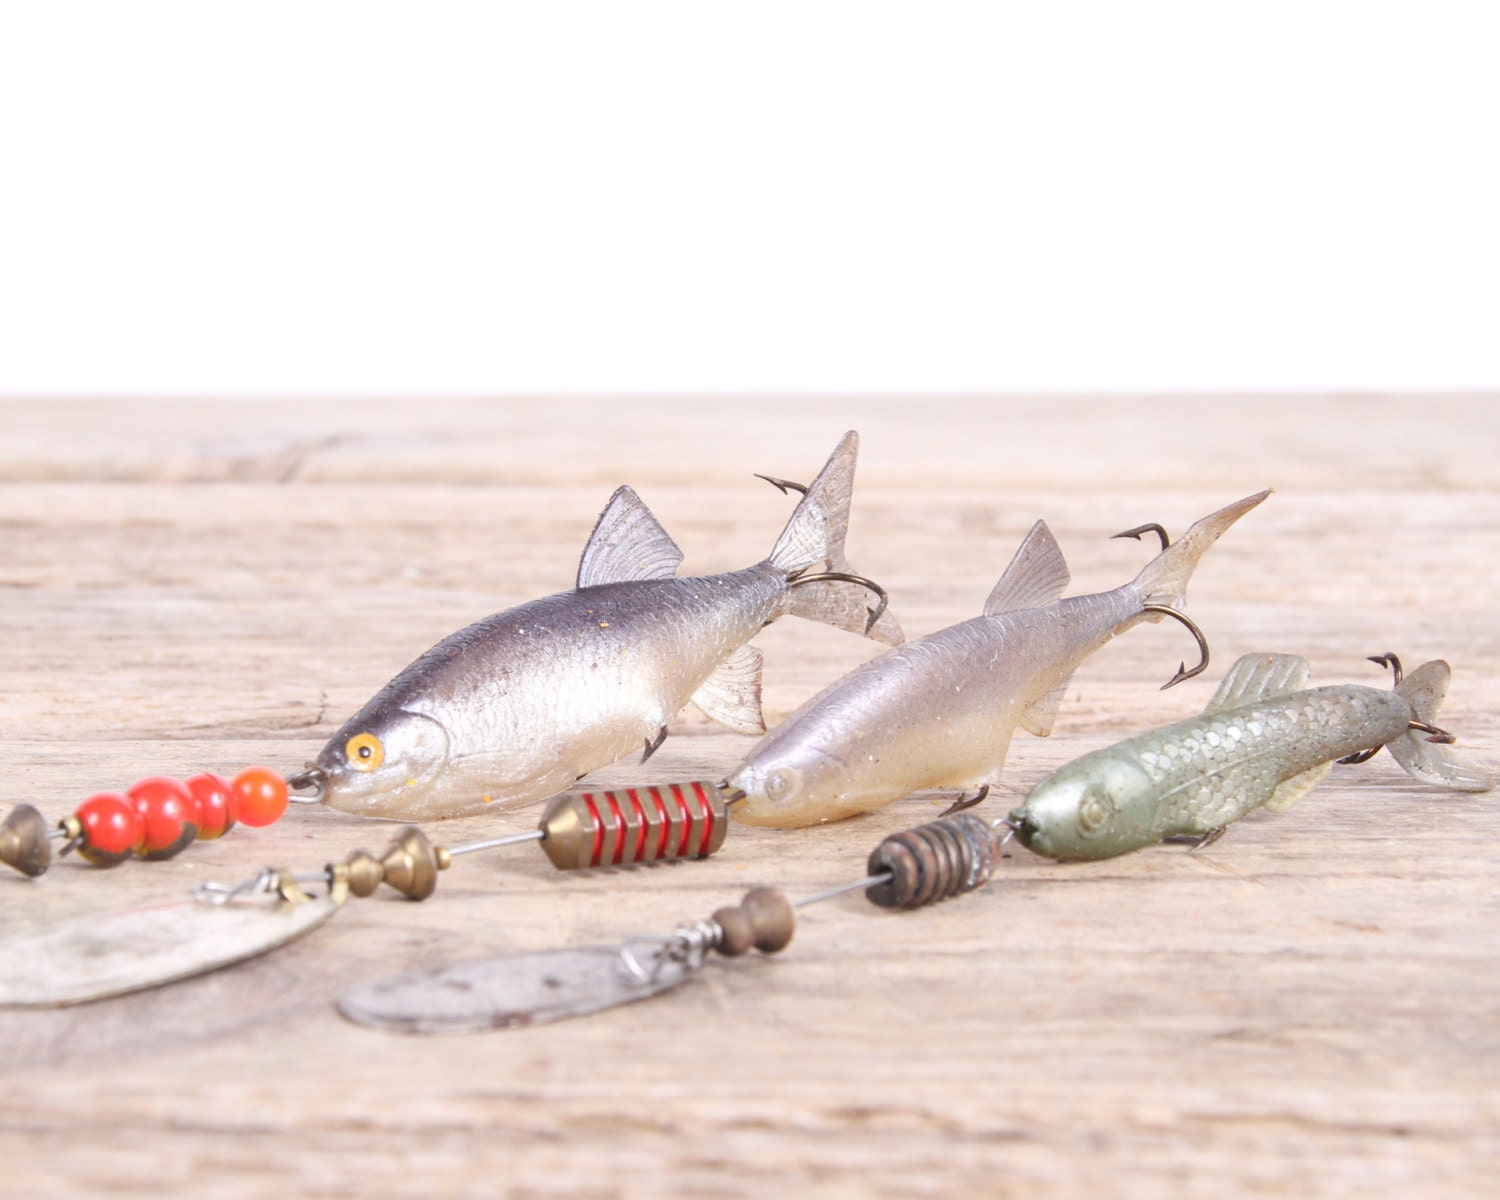 Old fishing lures mepps fishing lures fishing decor for Fishing lure decor